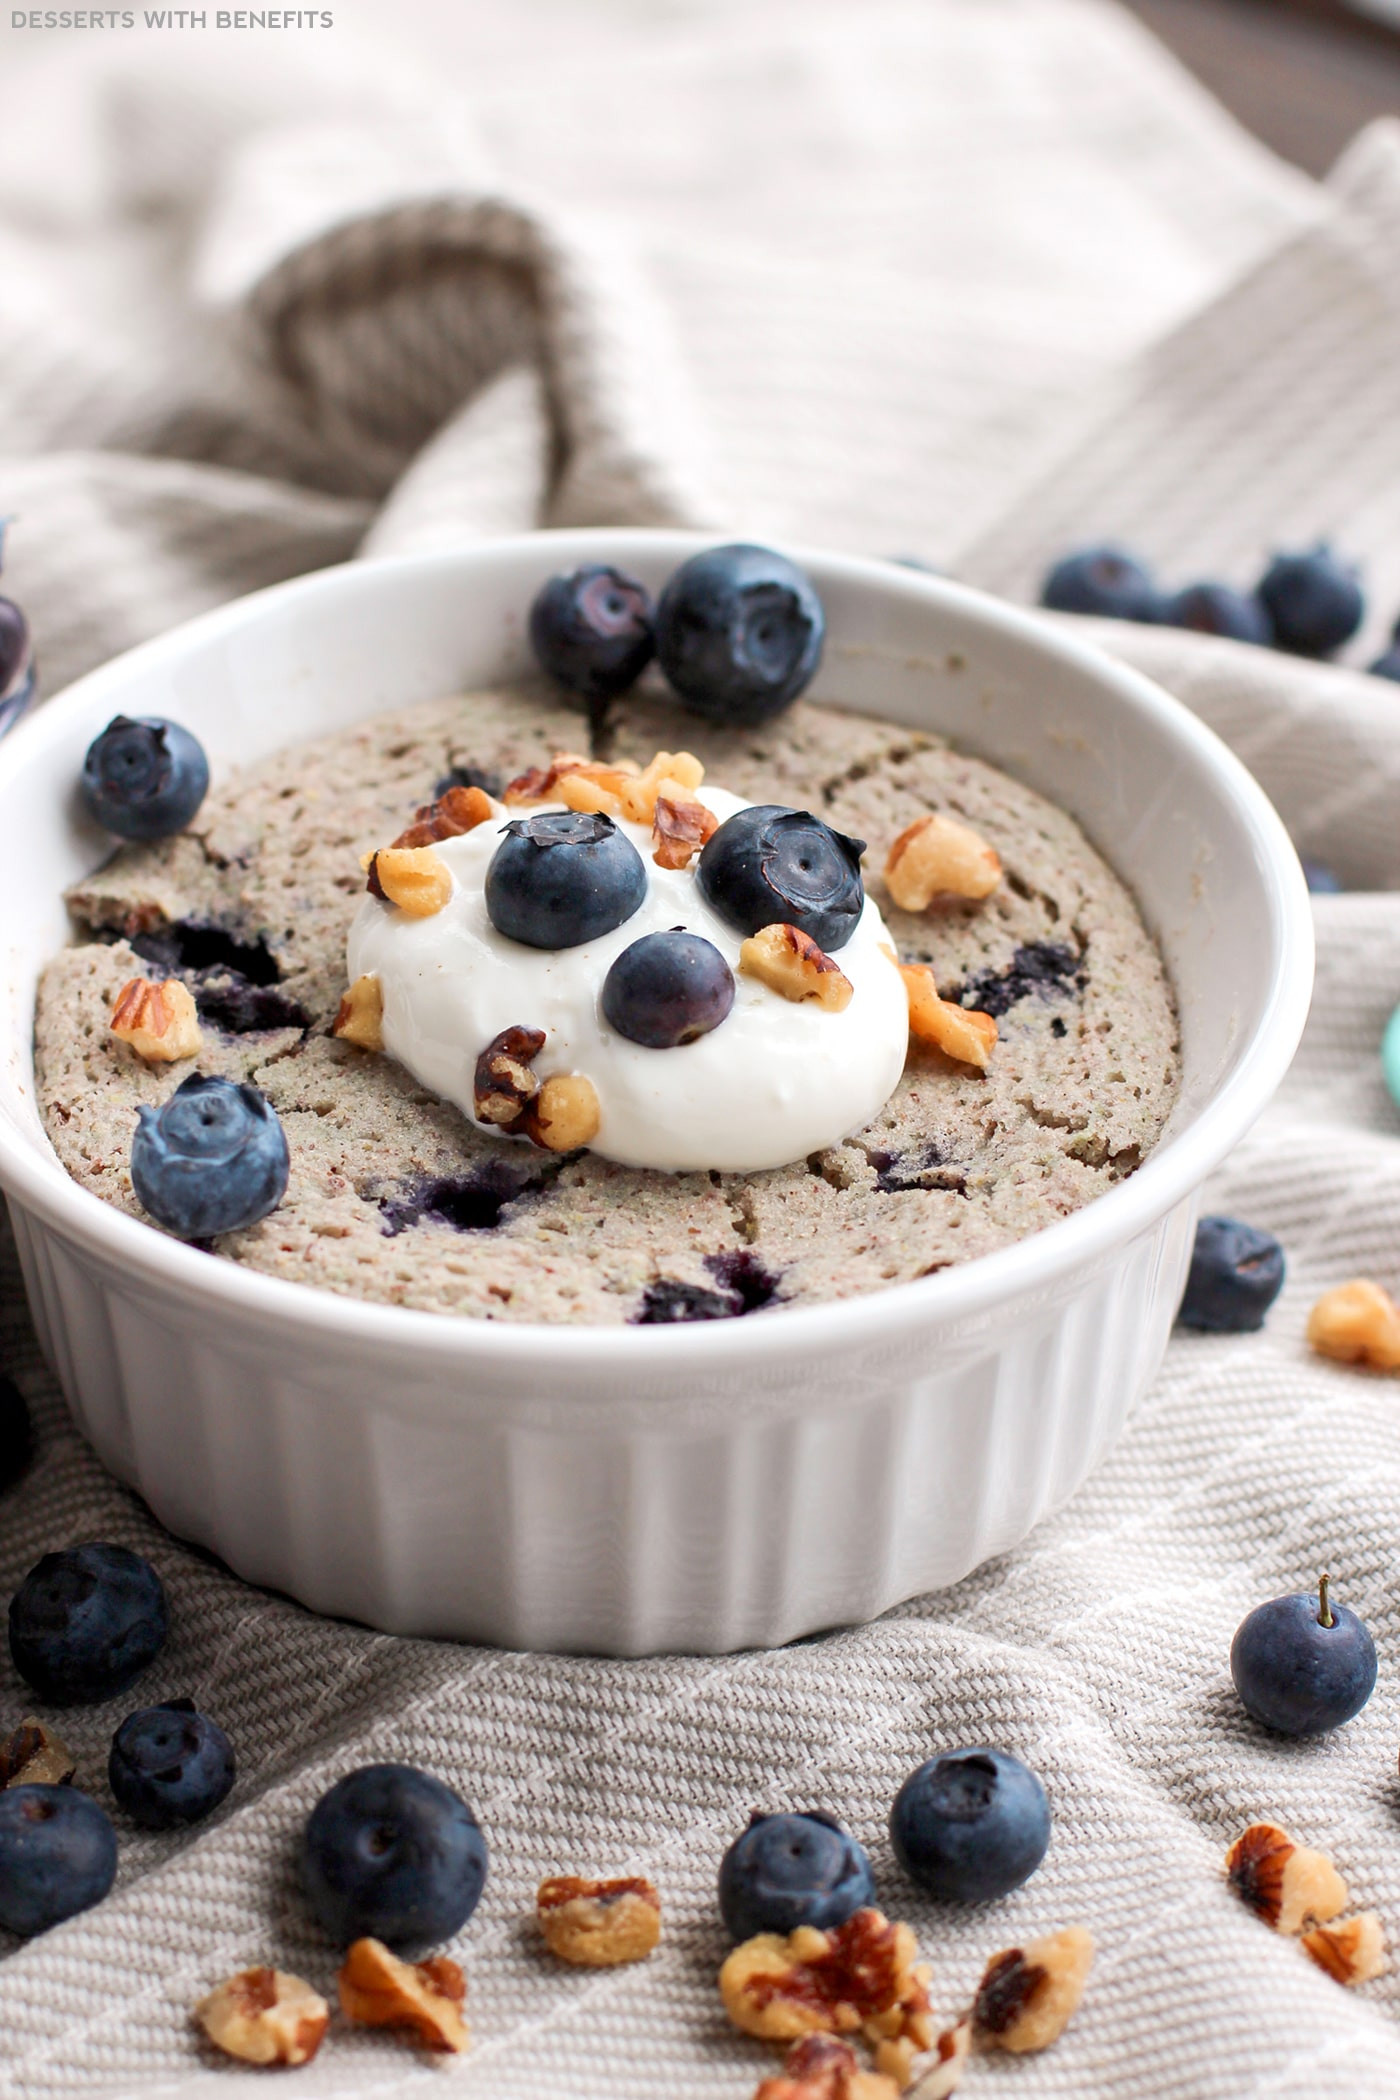 Healthy Desserts For One  Healthy Single Serving Blueberry Microwave Muffin